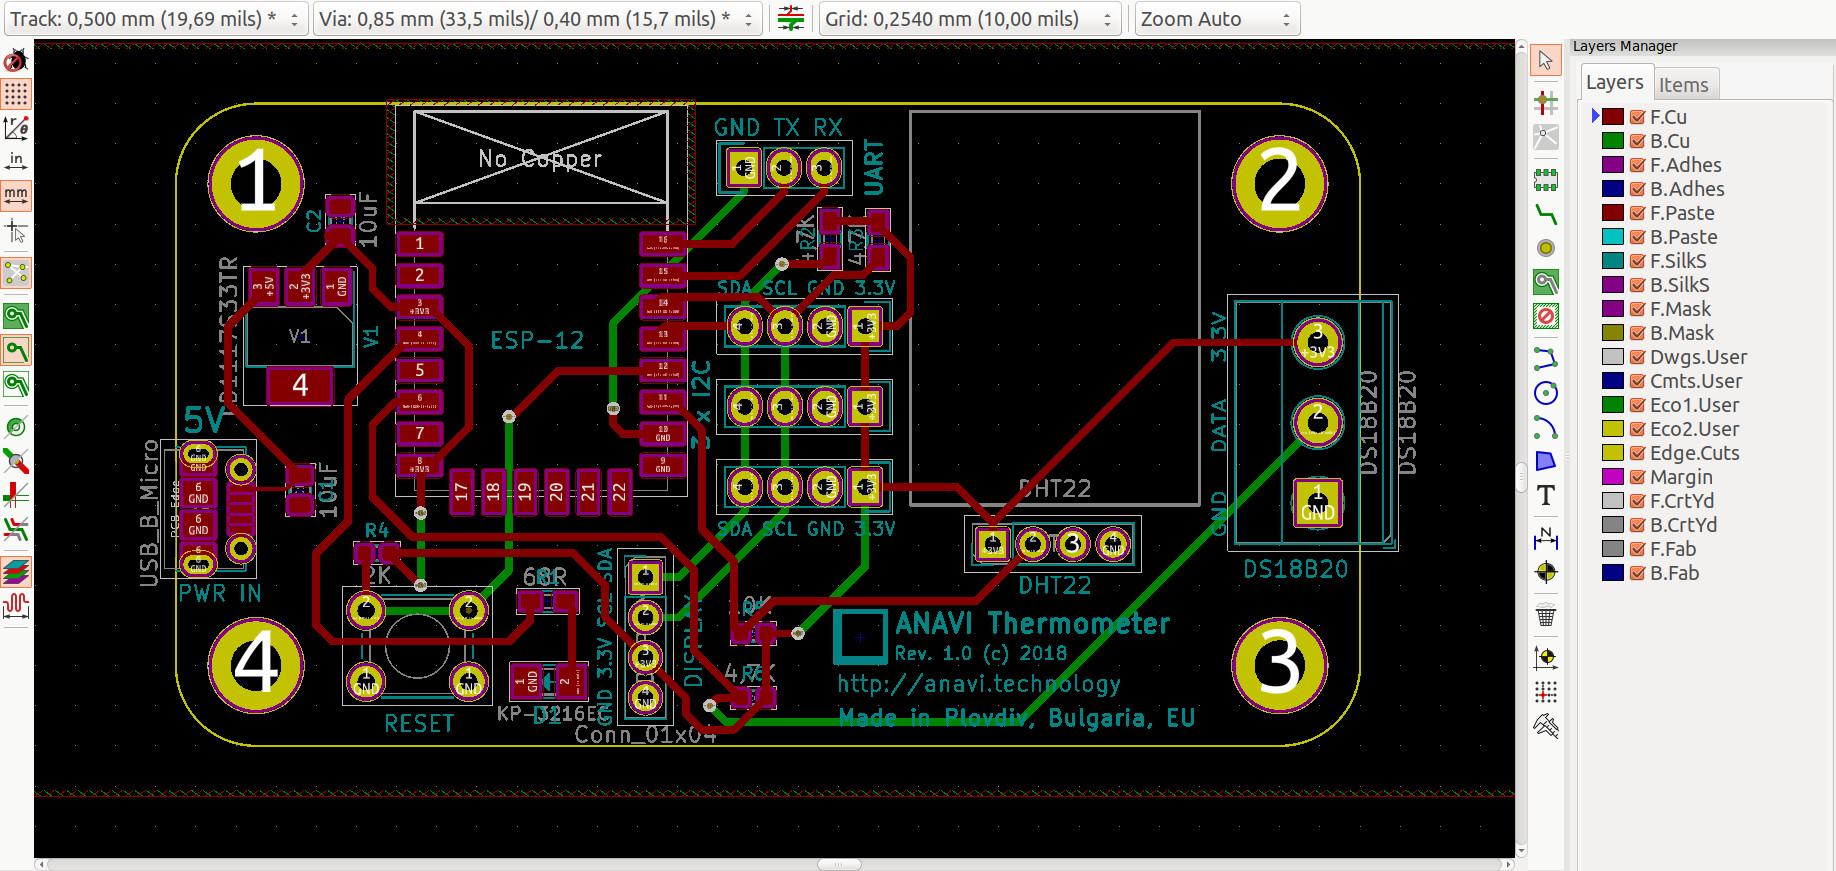 Anavi Thermometer Crowd Supply Colour Sensor Open Source Hardware And Computing Kicad